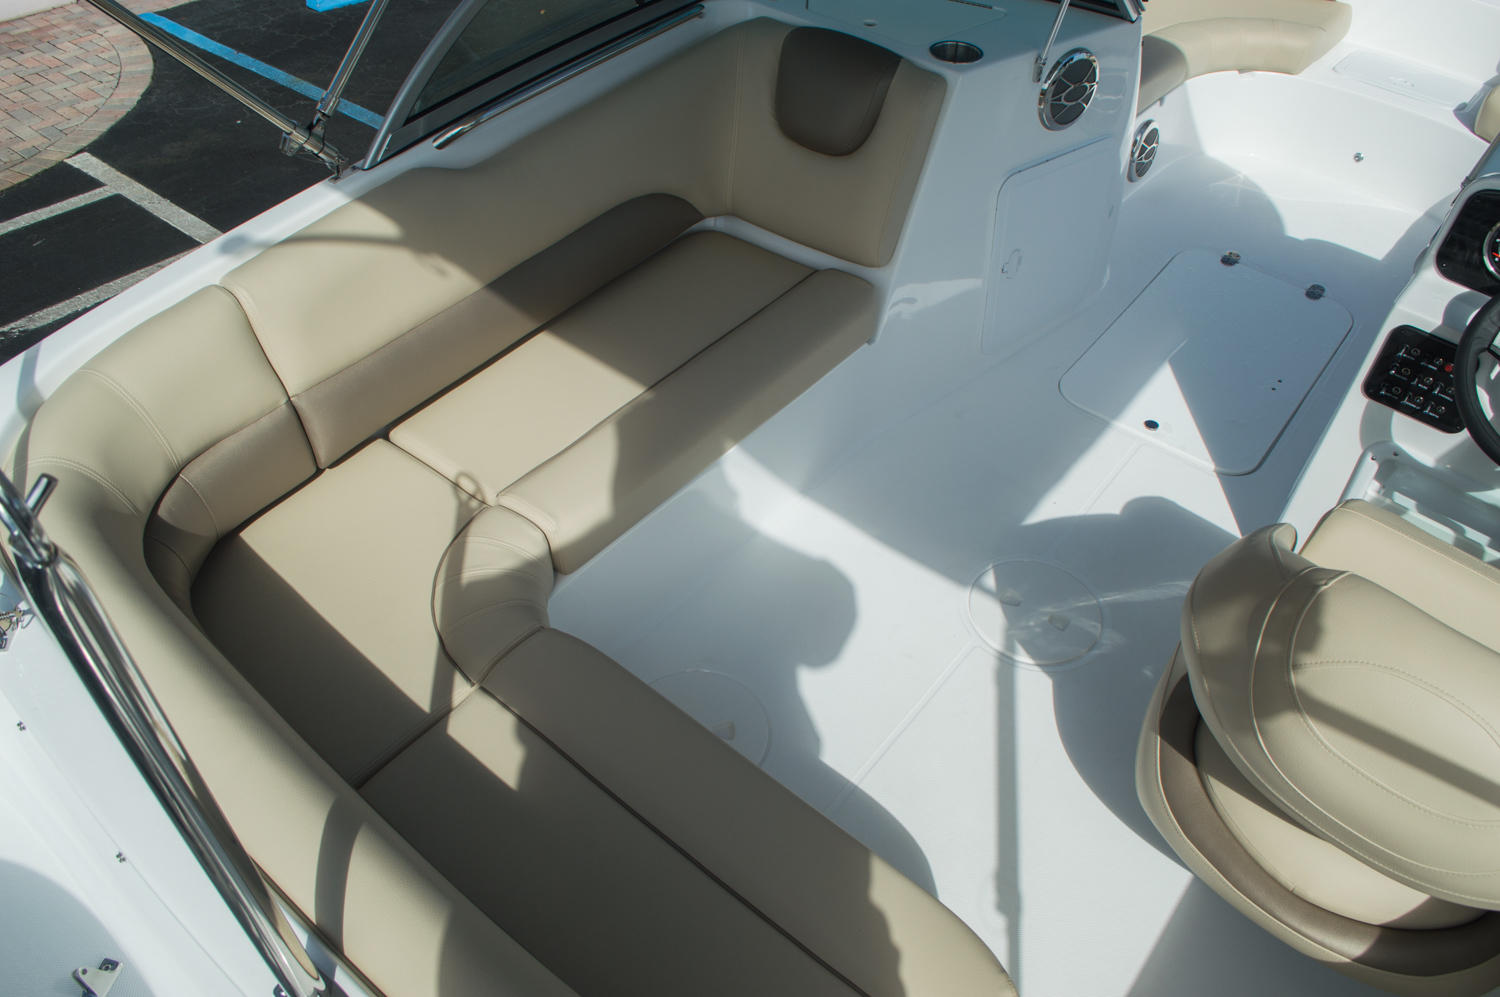 Thumbnail 10 for New 2016 Hurricane SunDeck SD 187 OB boat for sale in West Palm Beach, FL